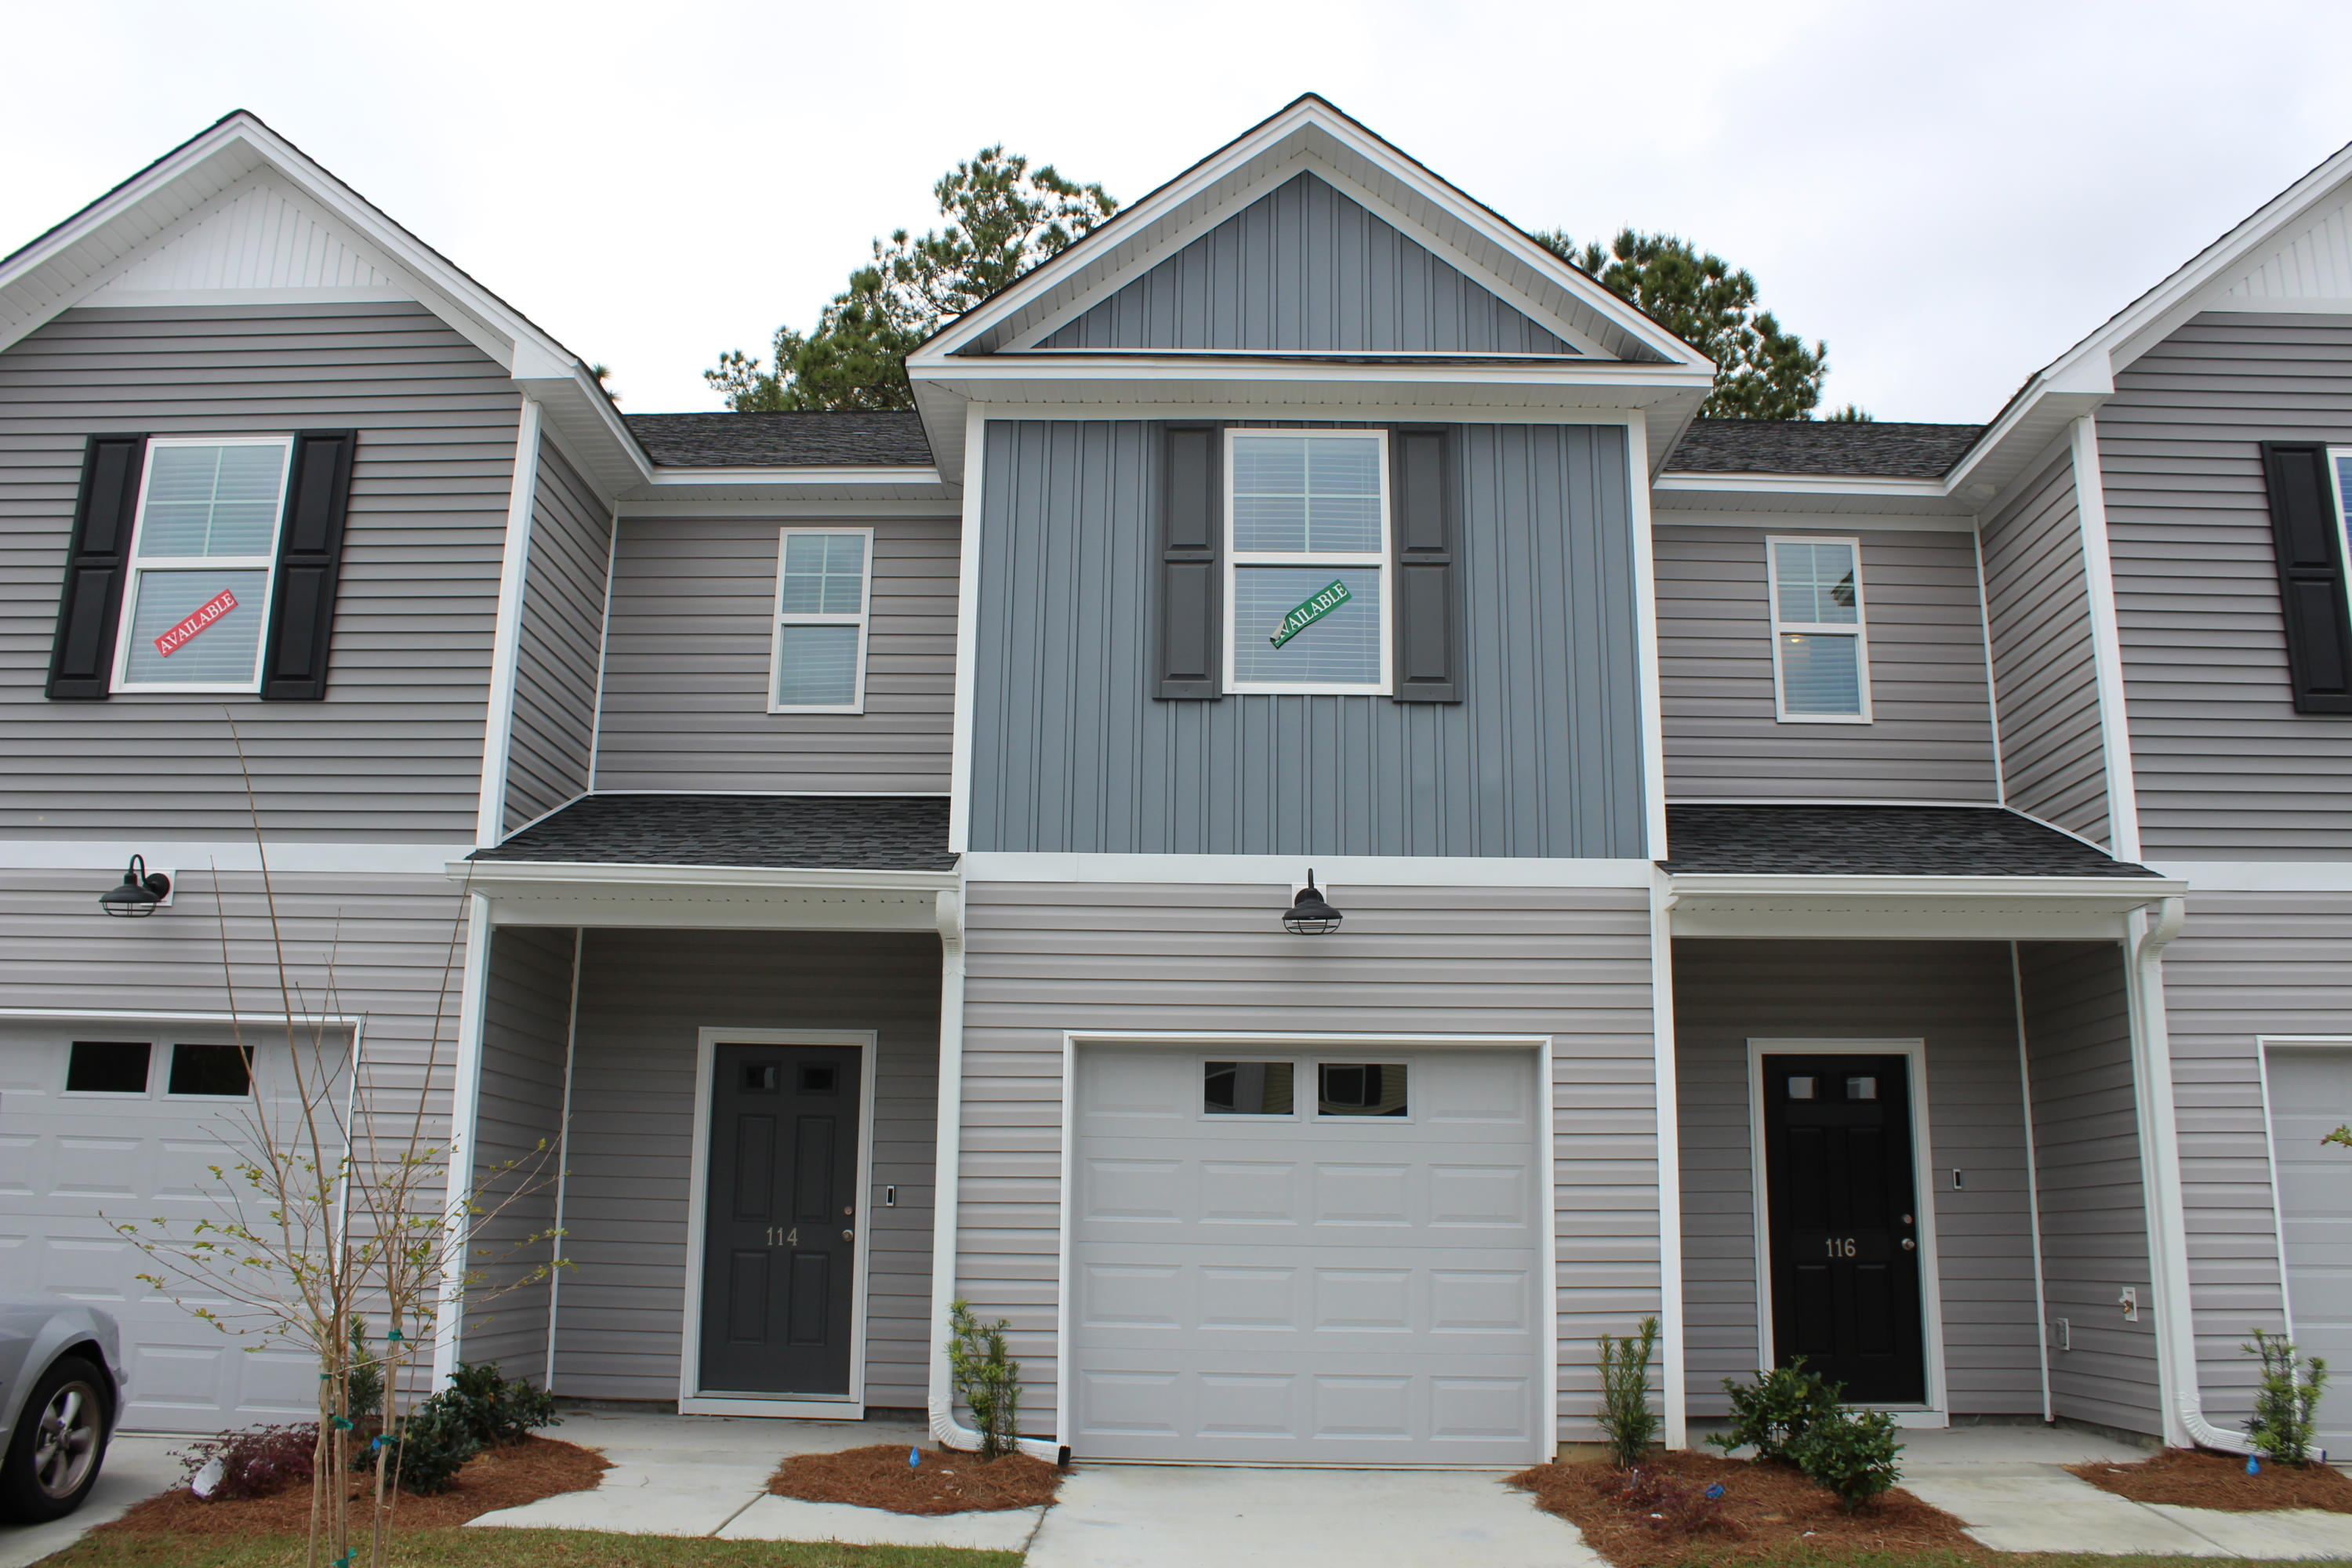 Lakeview Commons Homes For Sale - 114 Buchanan, Goose Creek, SC - 11